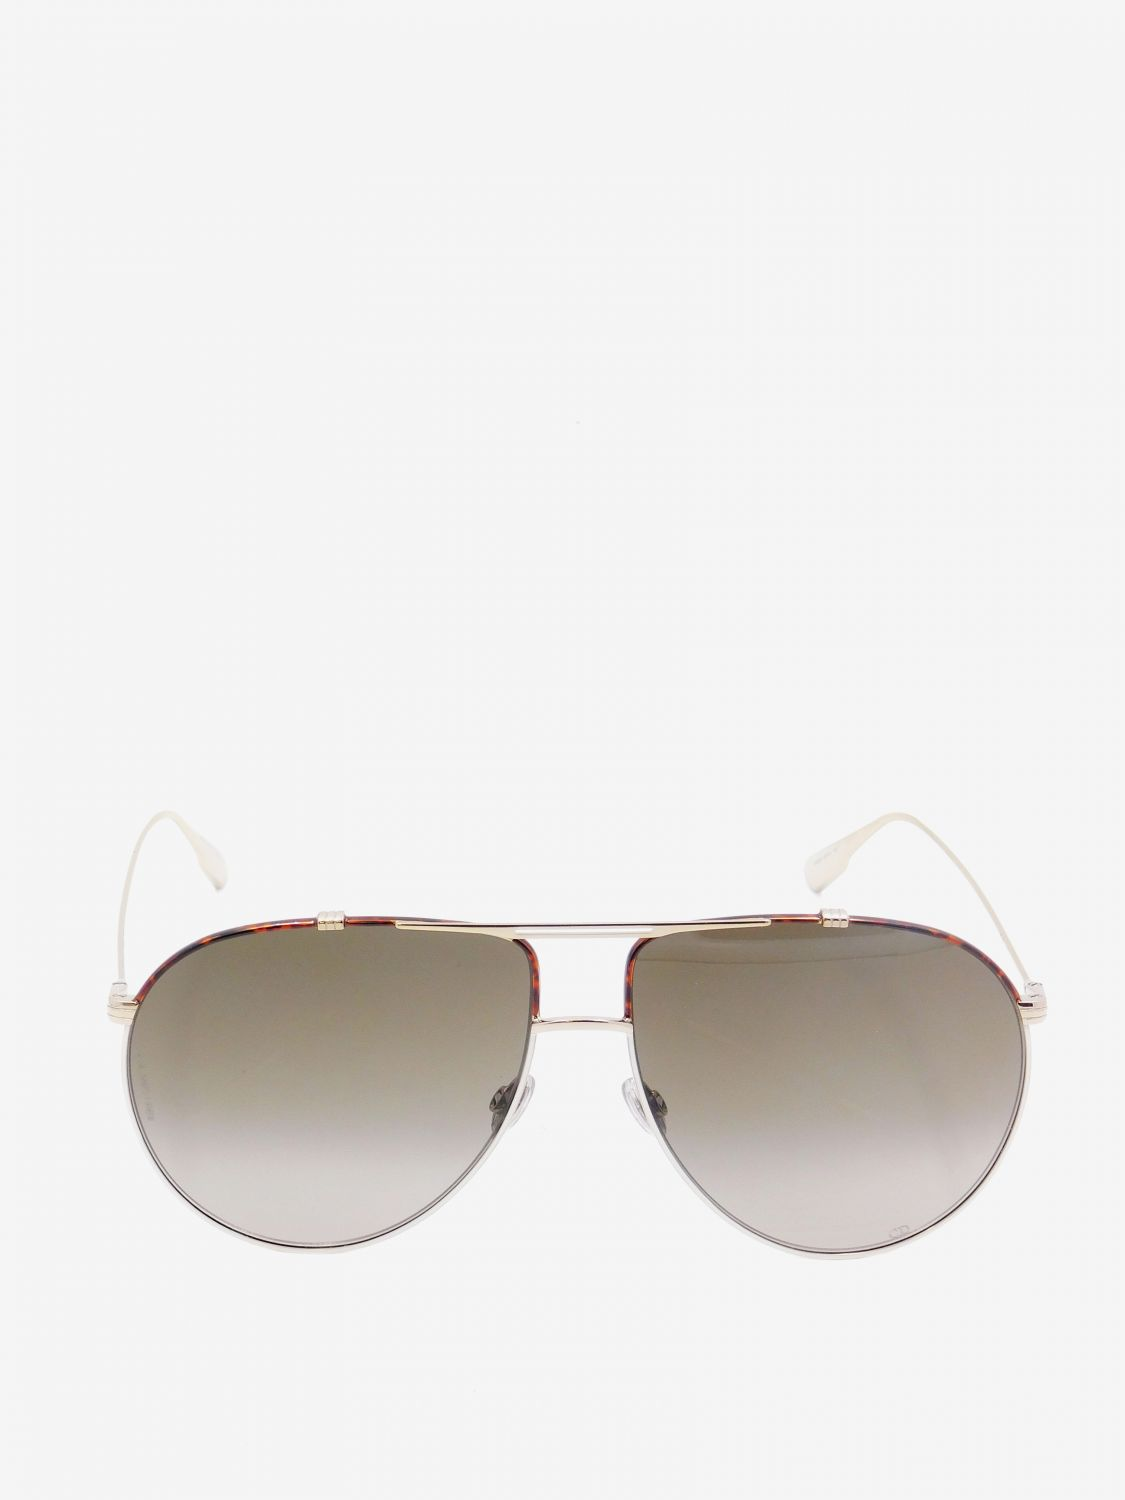 Glasses Christian Dior: Glasses women Christian Dior gold 2